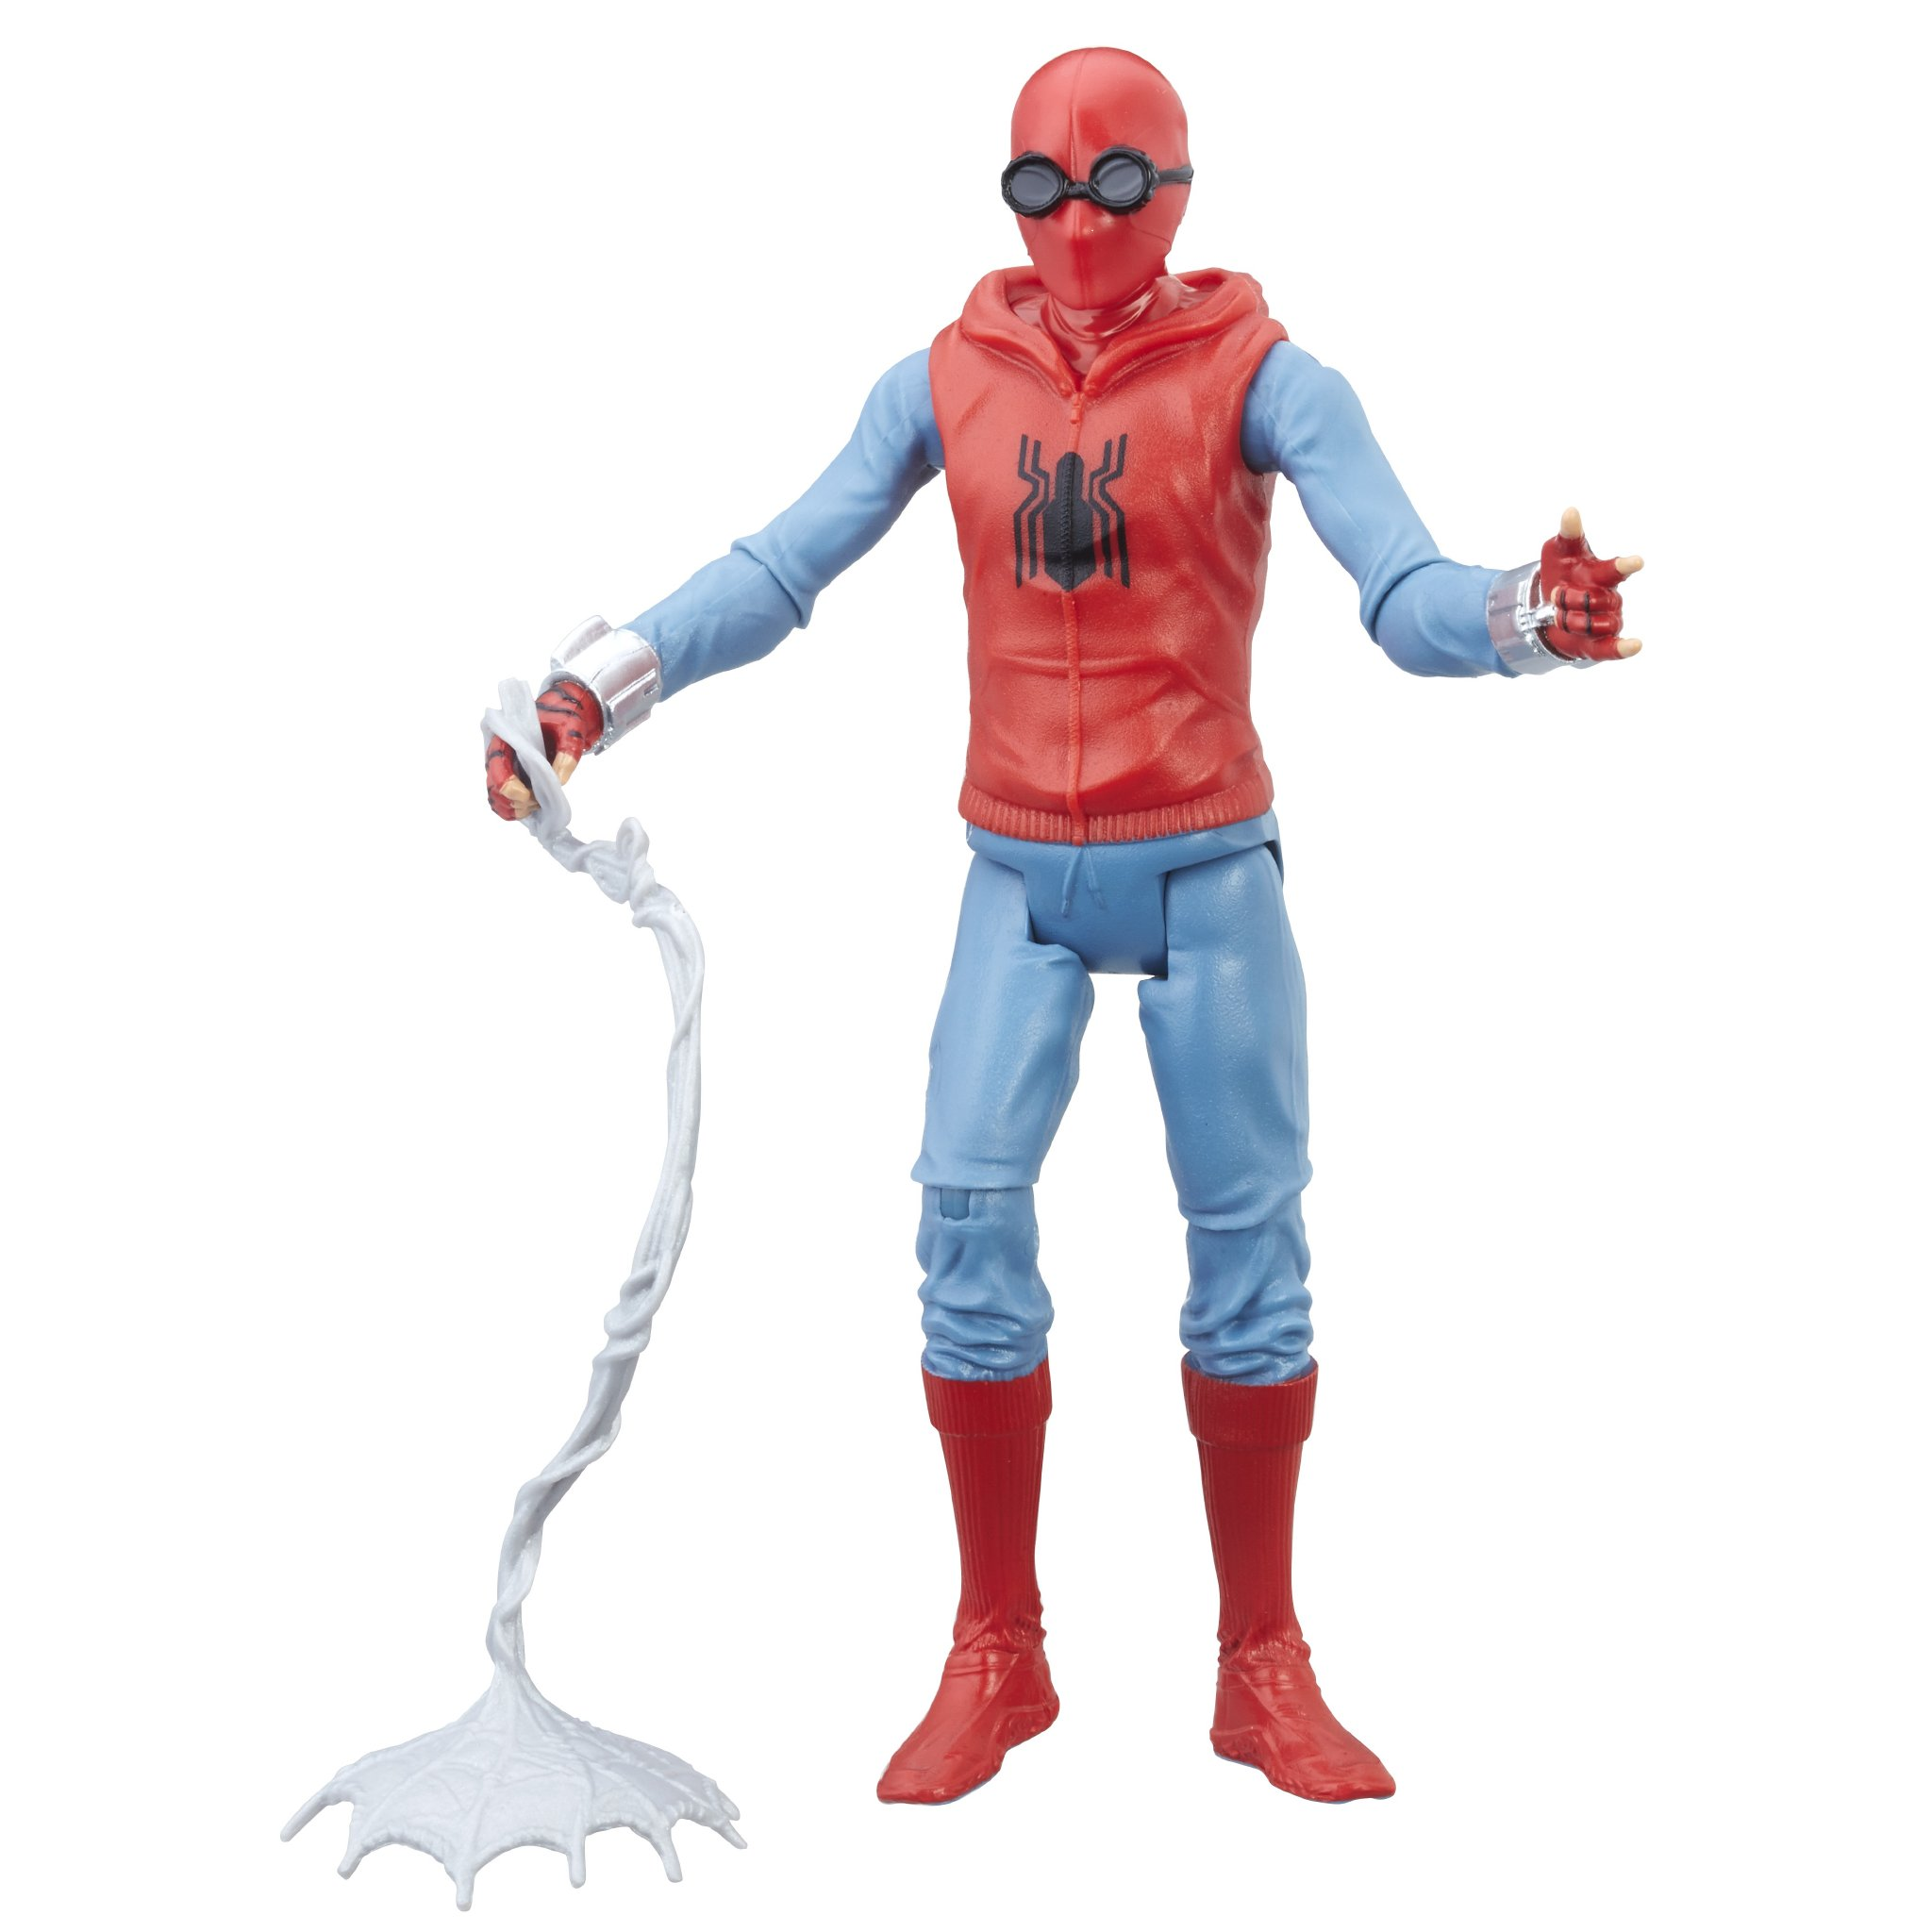 New Spider Man Homecoming Official Images From Hasbro